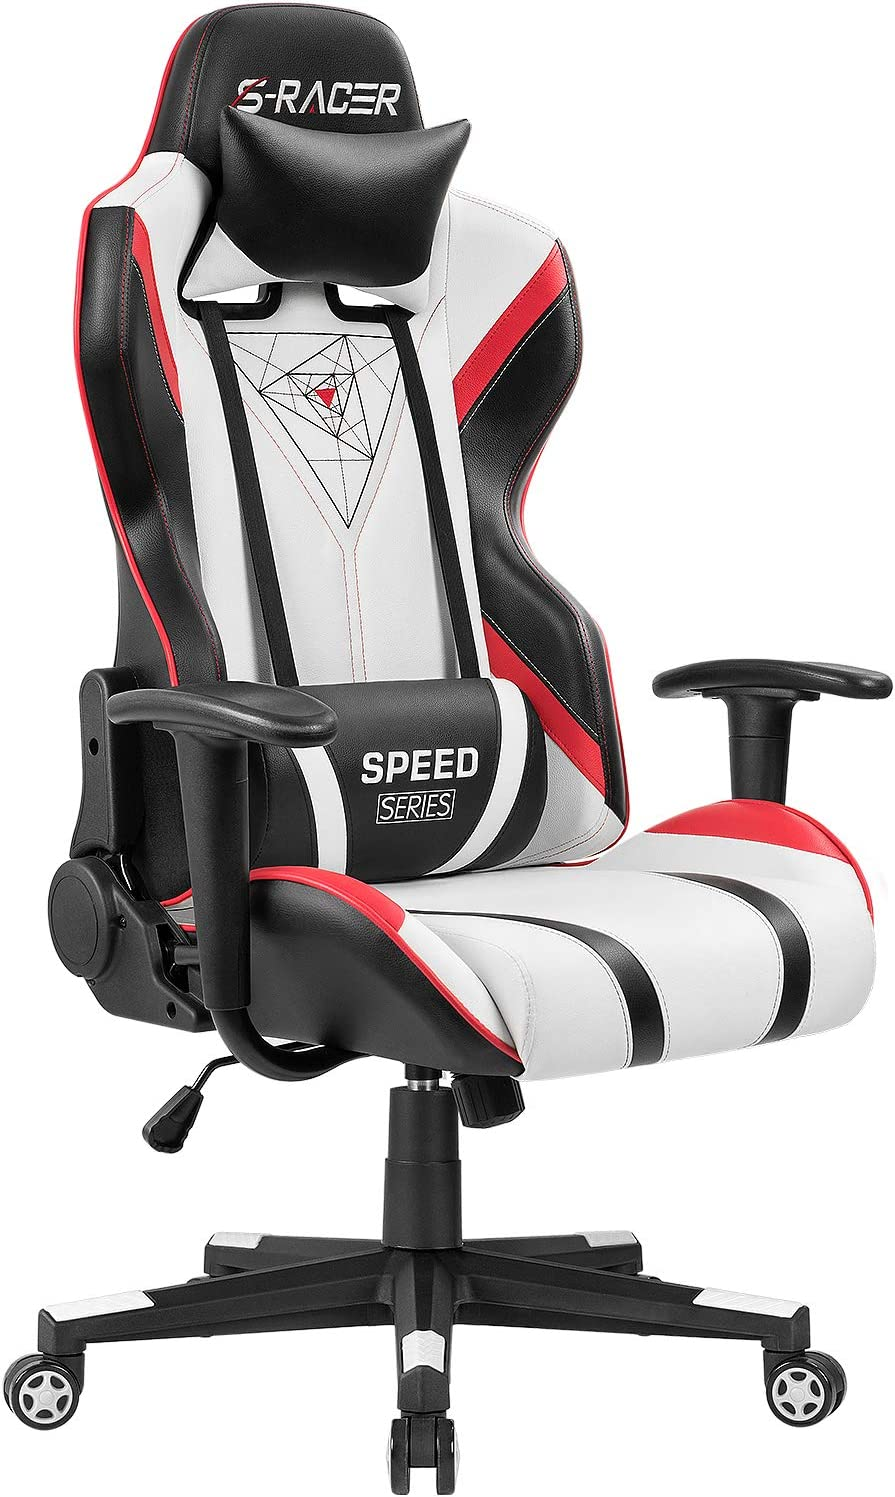 717nldQZb8L. AC SL1500 - What Is The Best Gaming Chair For Short Person - ChairPicks